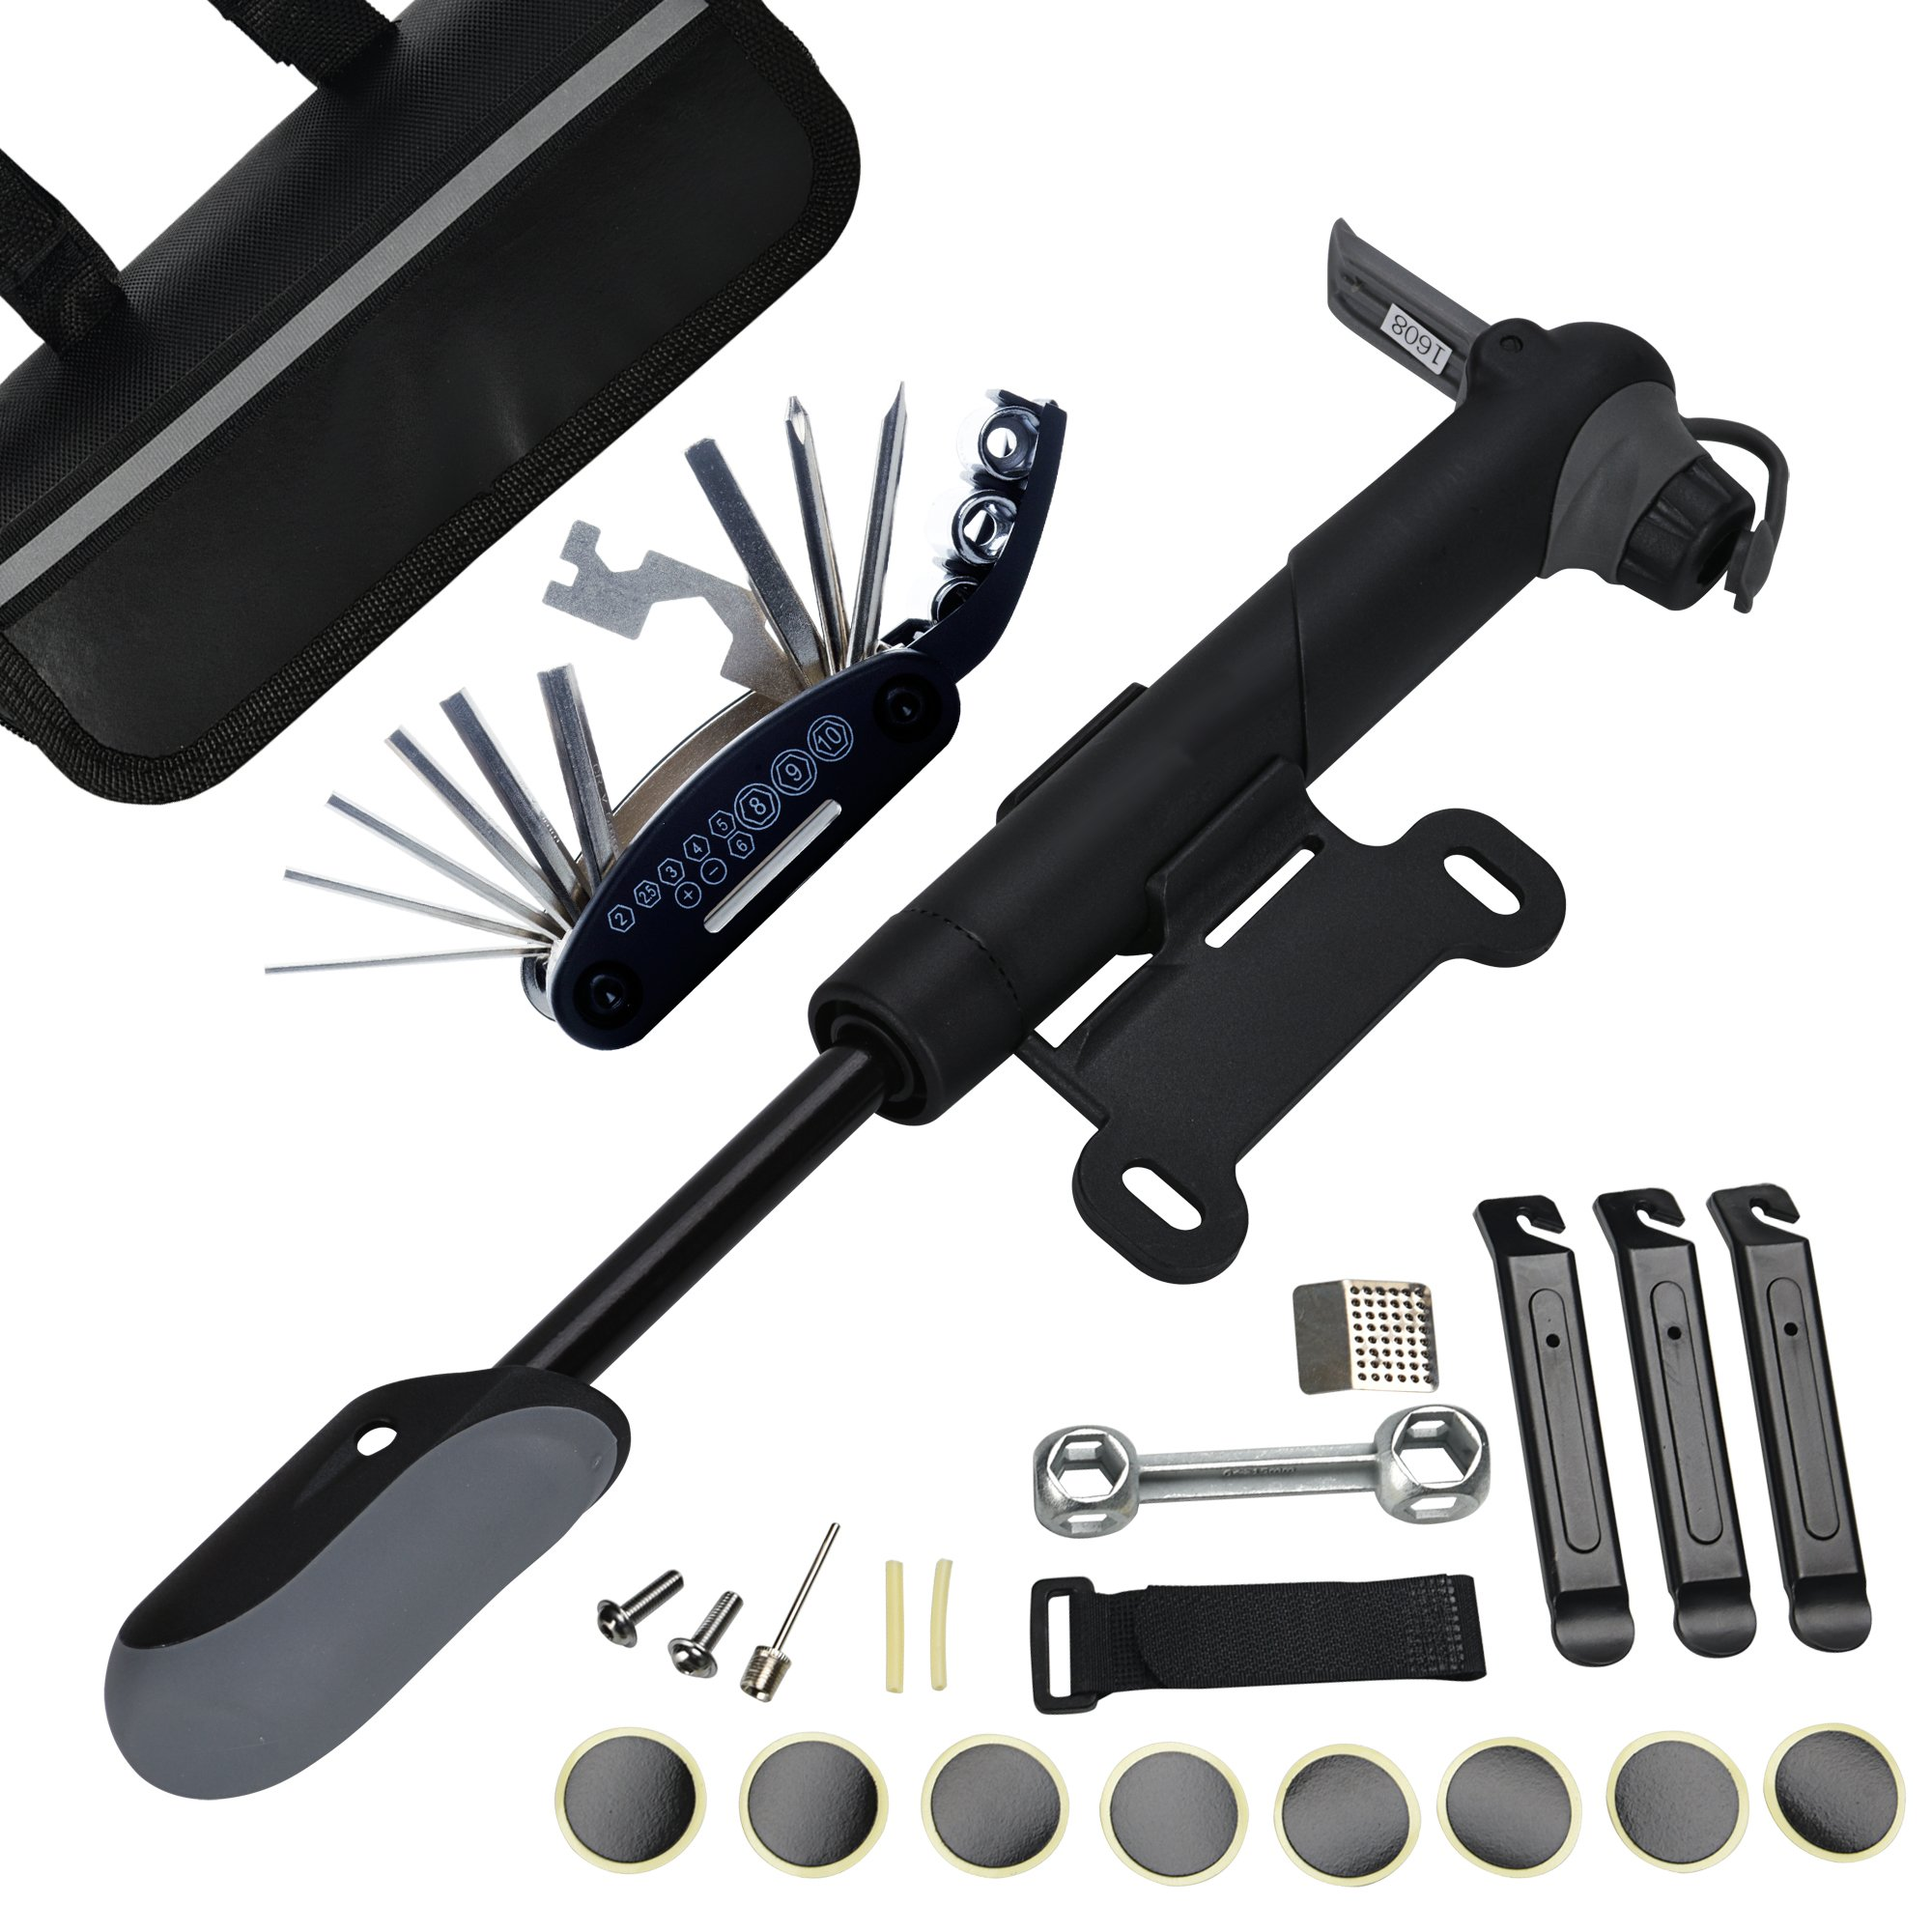 DAWAY A35 Bike Repair Kit - 120 PSI Mini Pump & 16 in 1 Bicycle Multi Tool with Handy Bag Included Glueless Tire Tube Patches & Tire Levers